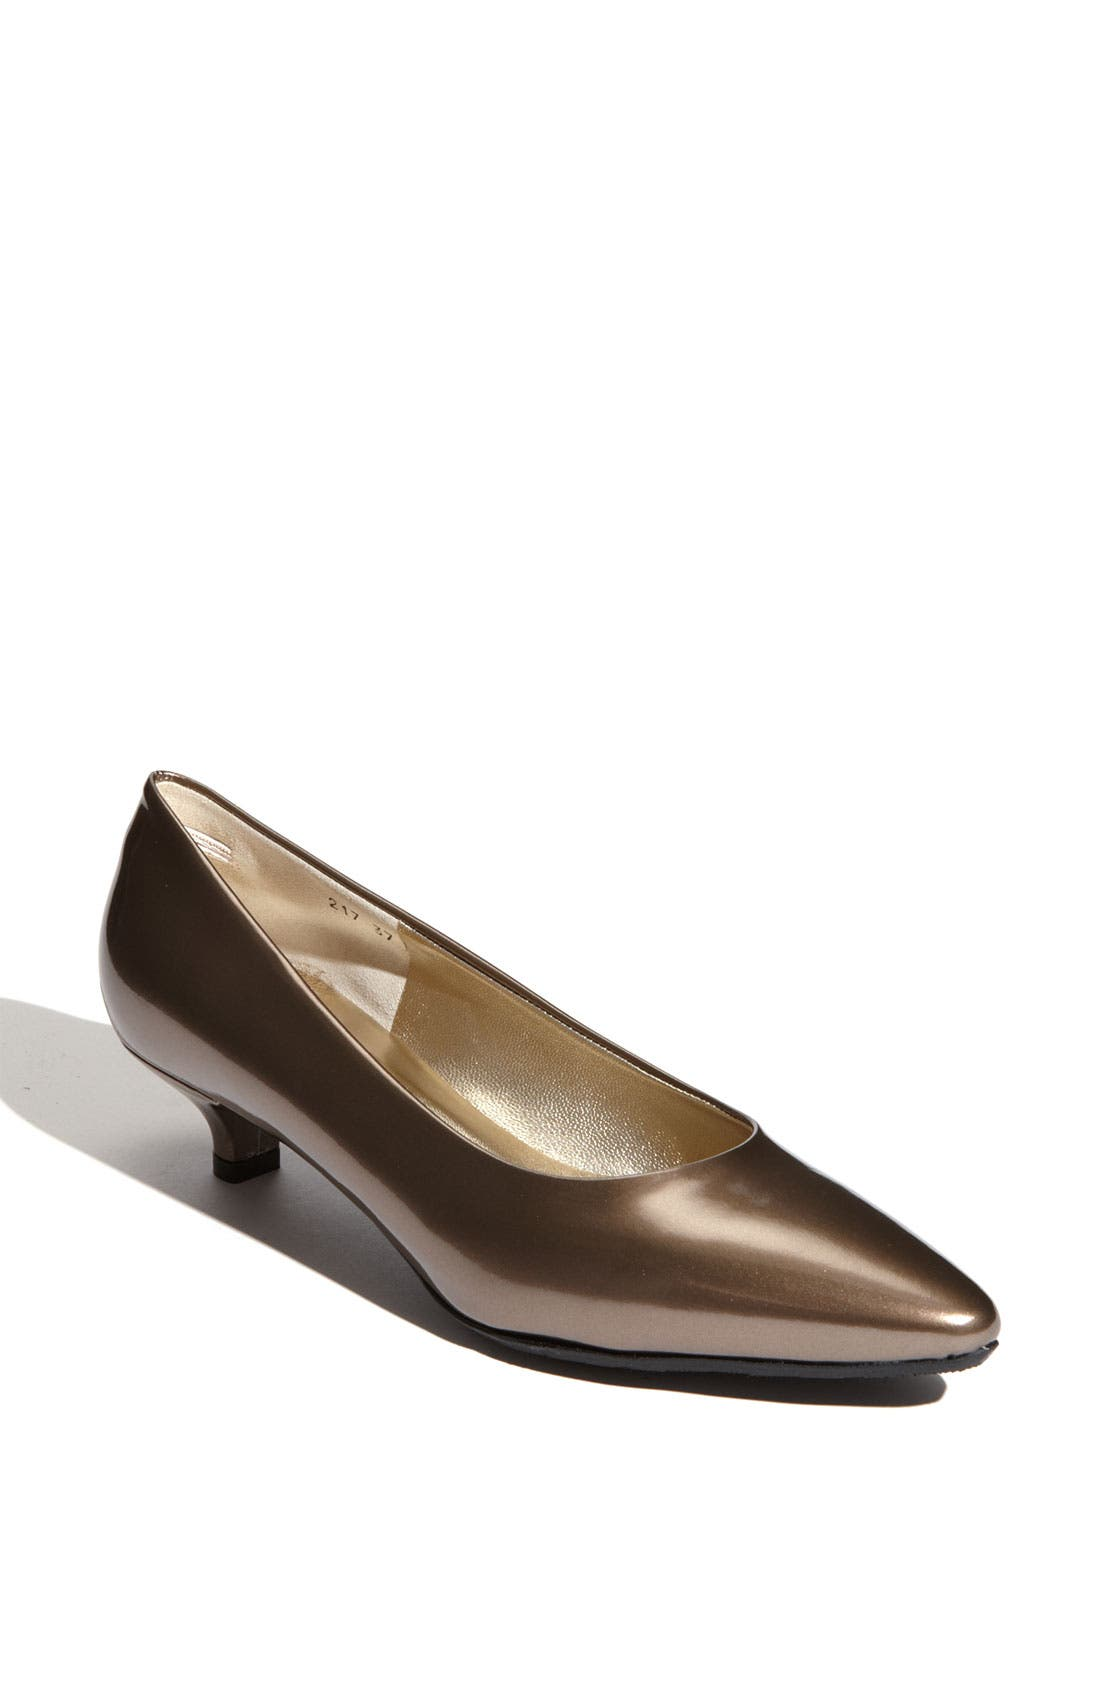 Alternate Image 1 Selected - Ron White 'Michelle' Pump